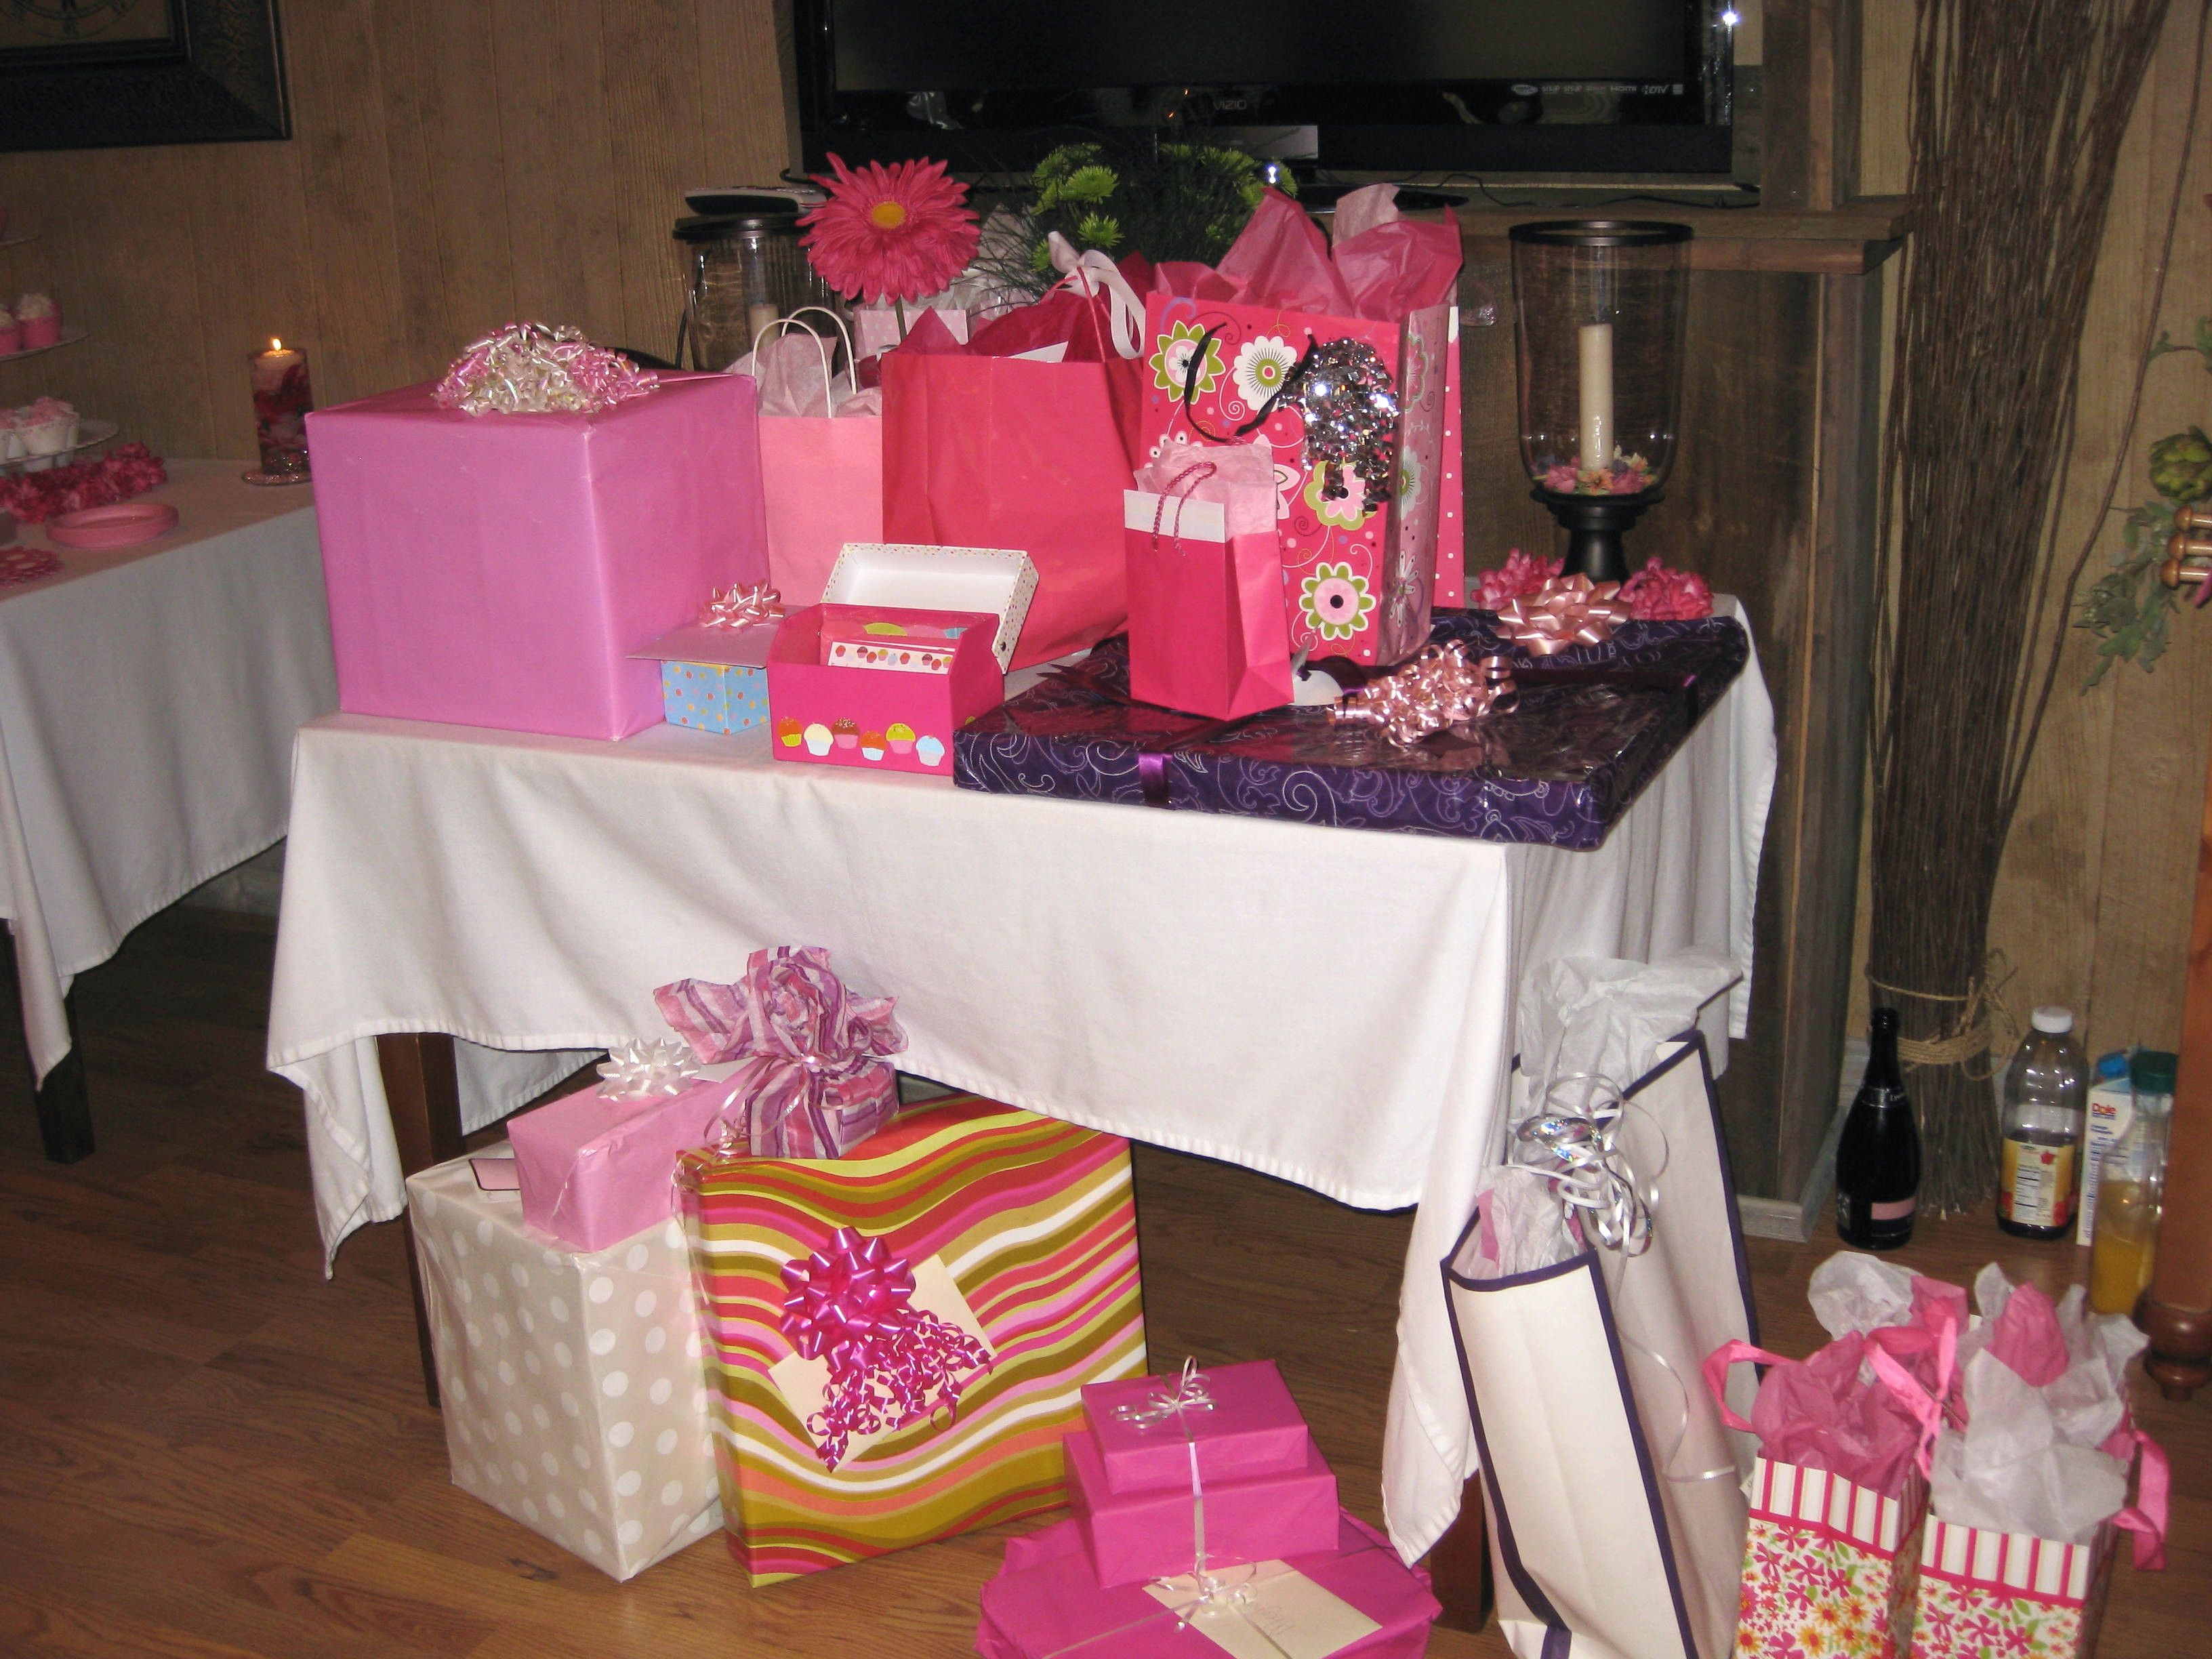 Wedding Gift Table Ideas Pinterest : gift table Wedding Ideas Pinterest